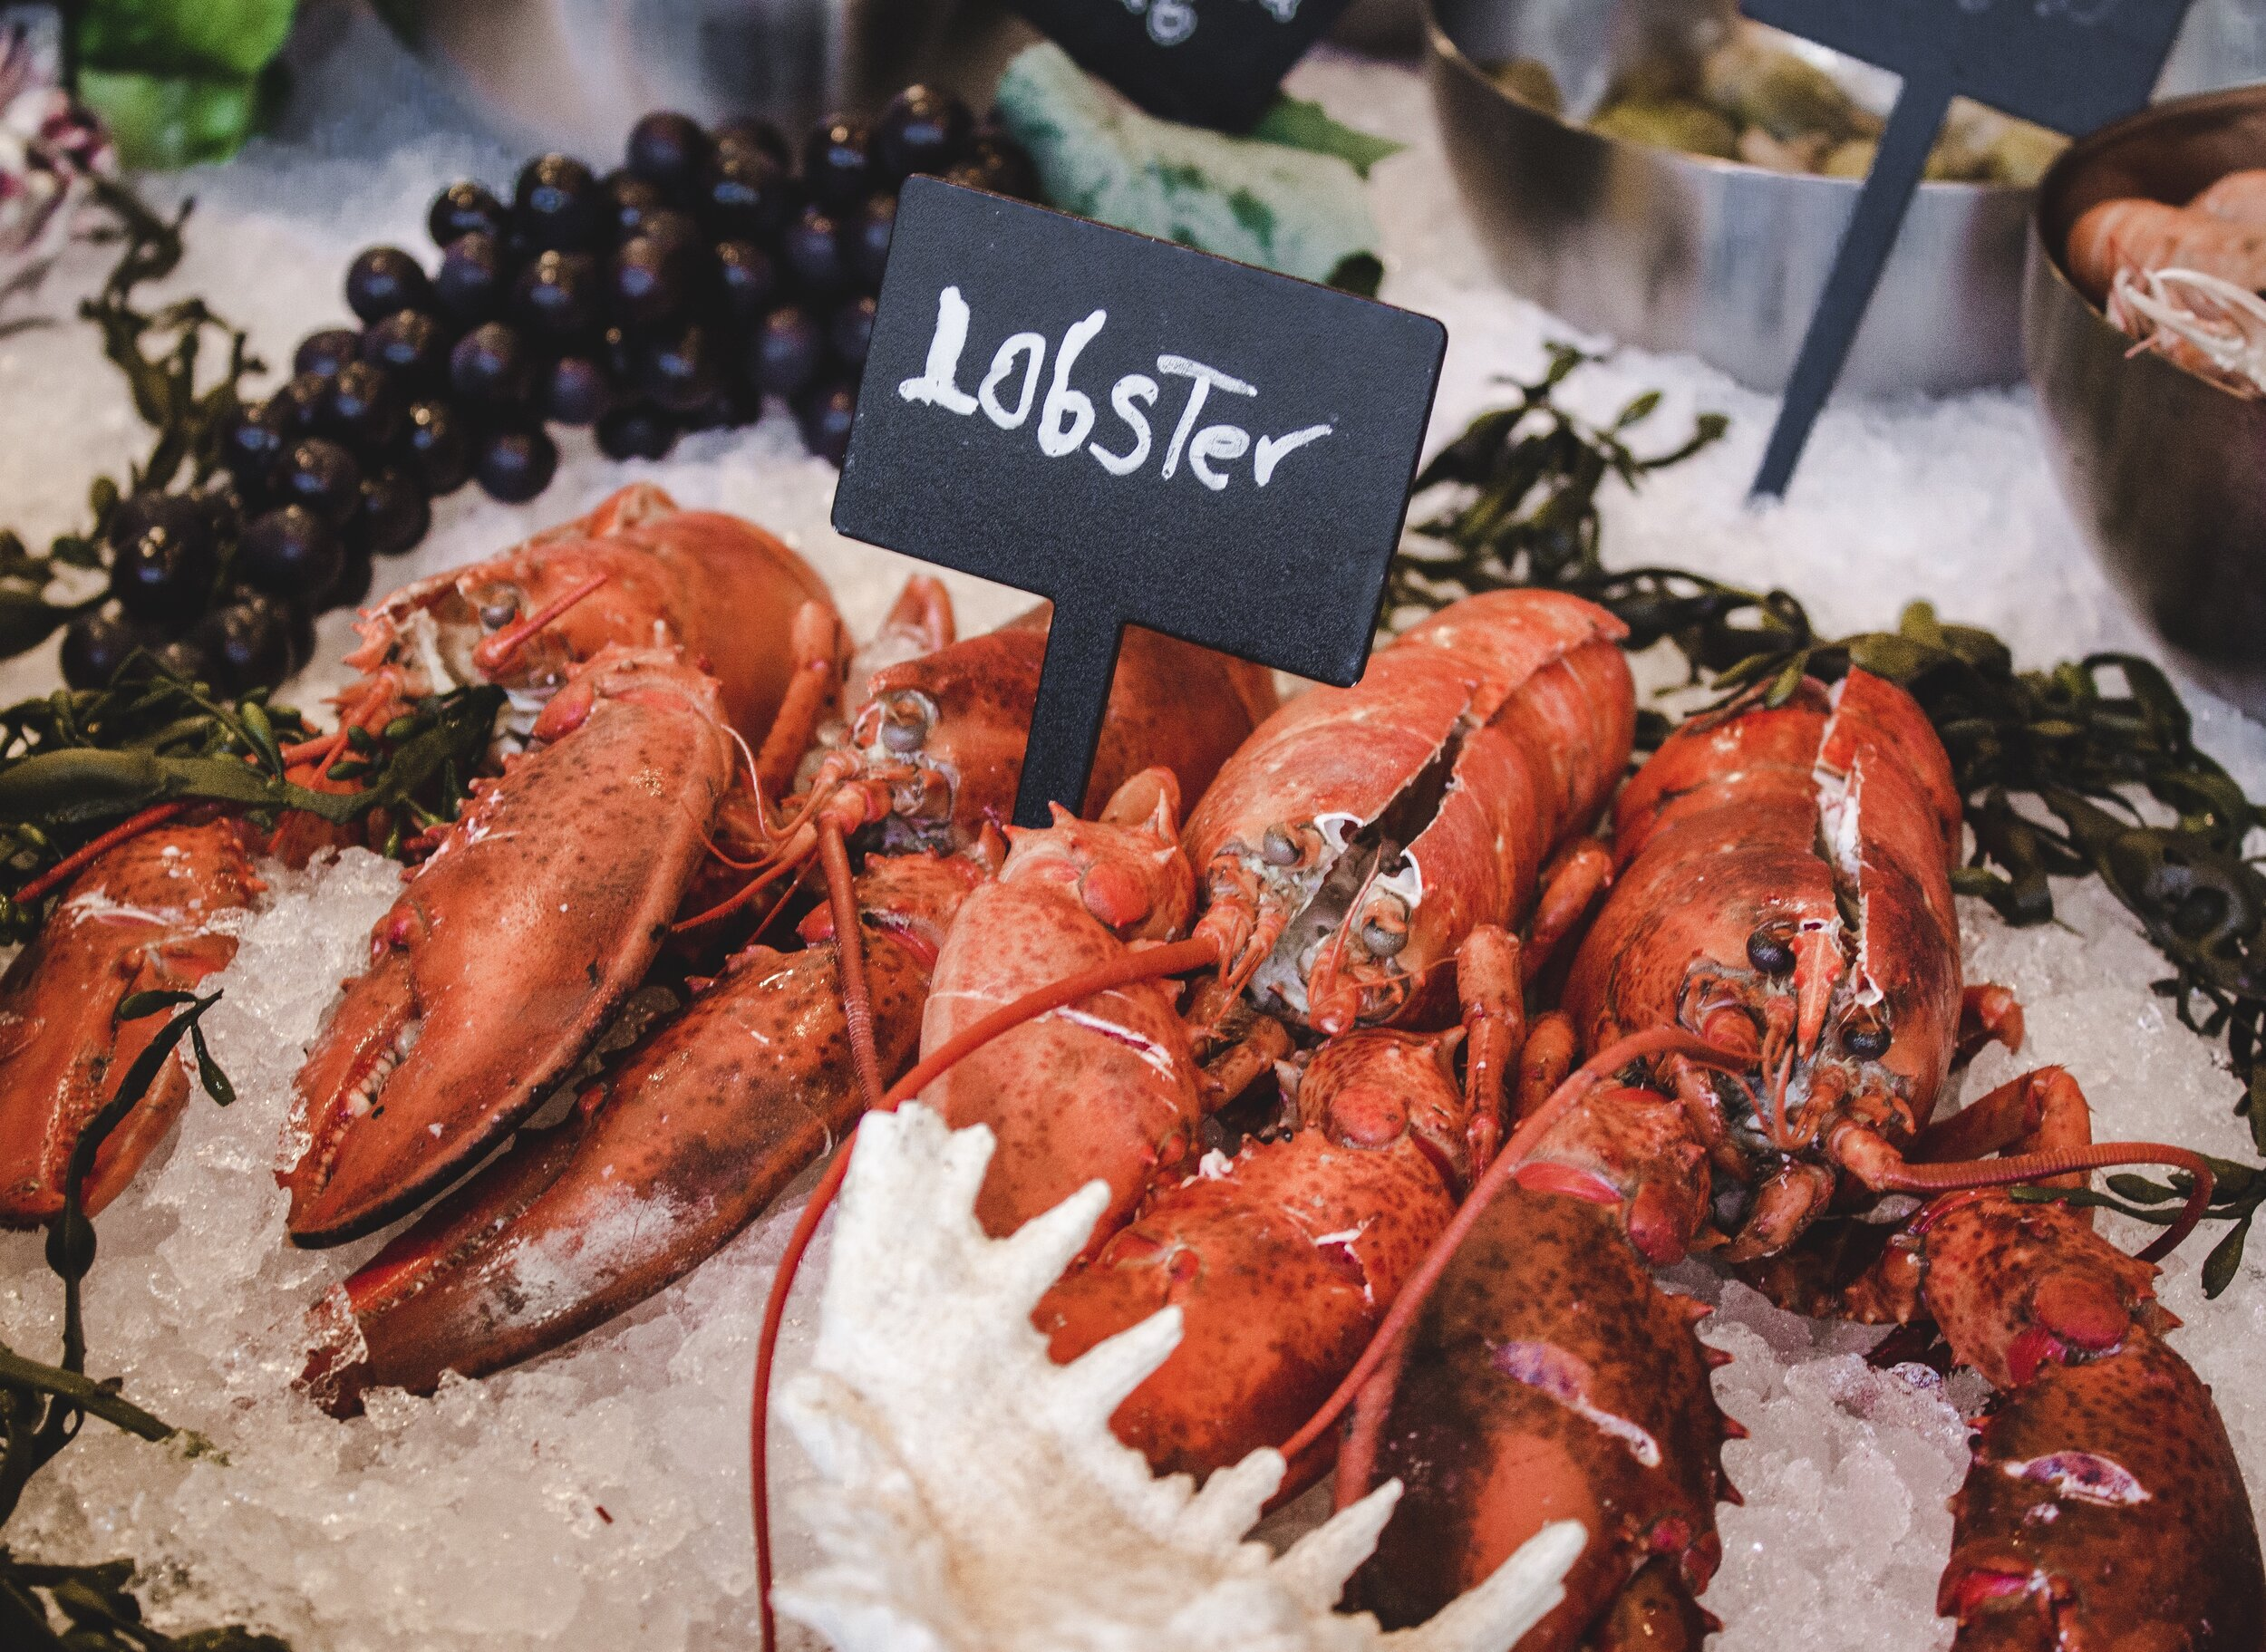 Do not store live lobsters on ice for a long period of time because the ice will melt and they will die.